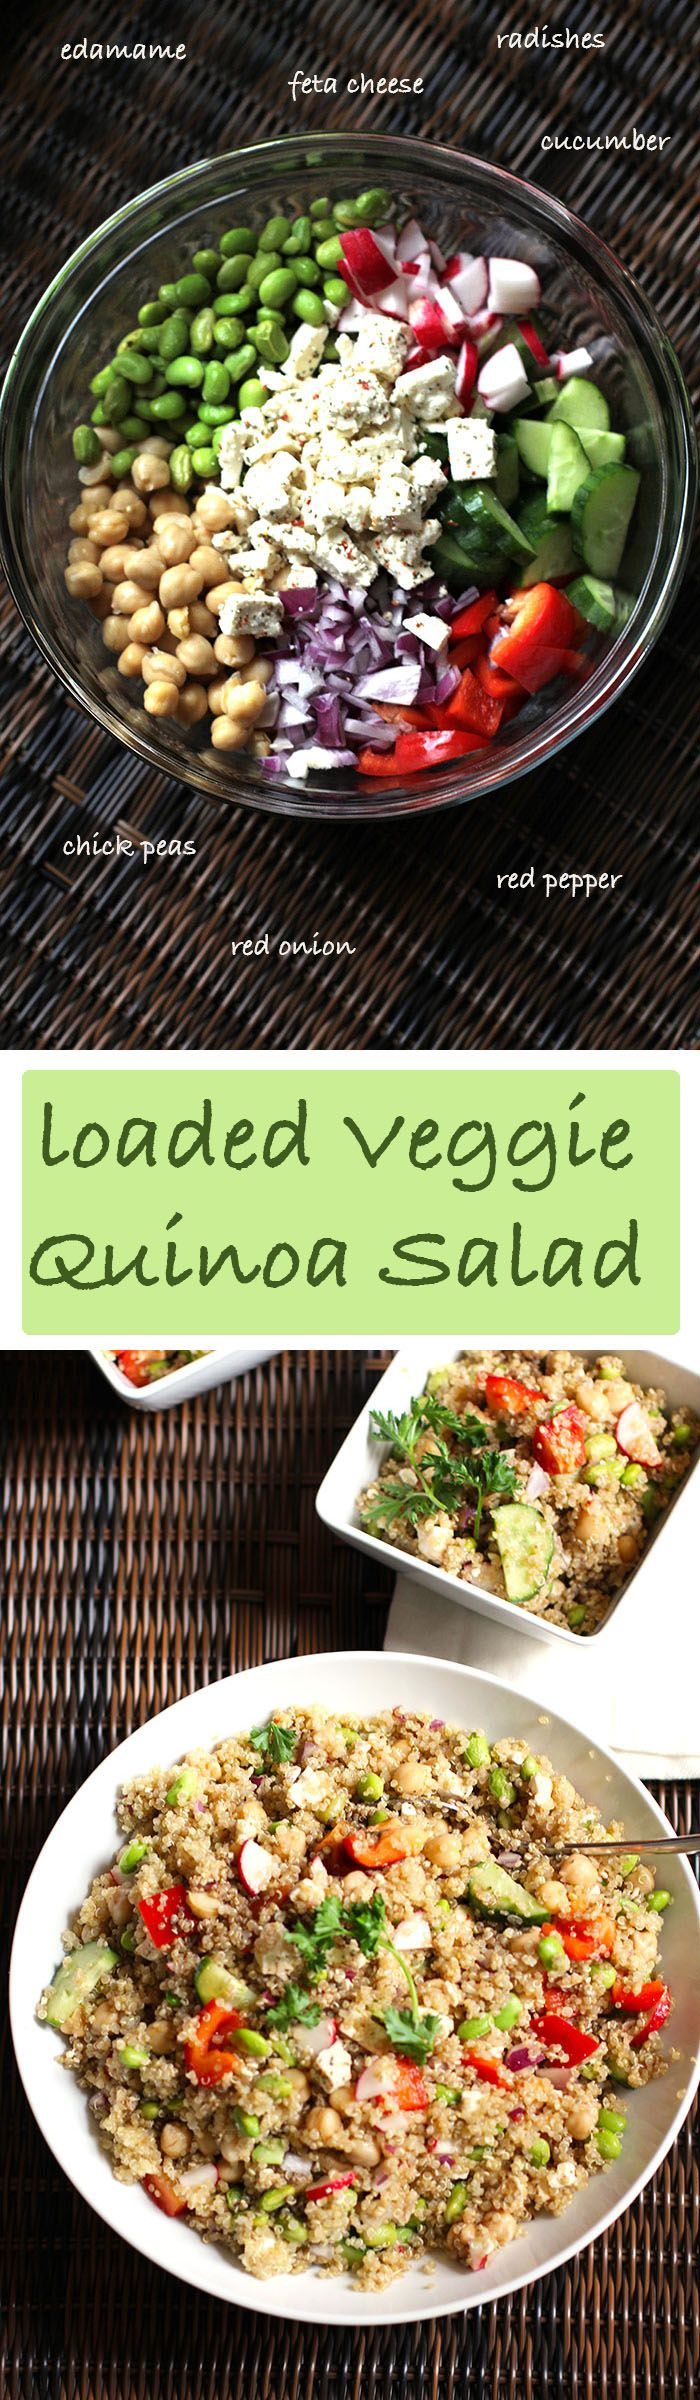 A delicious and hearty quinoa salad, packed with protein and veggies. SUPER food to the max!!